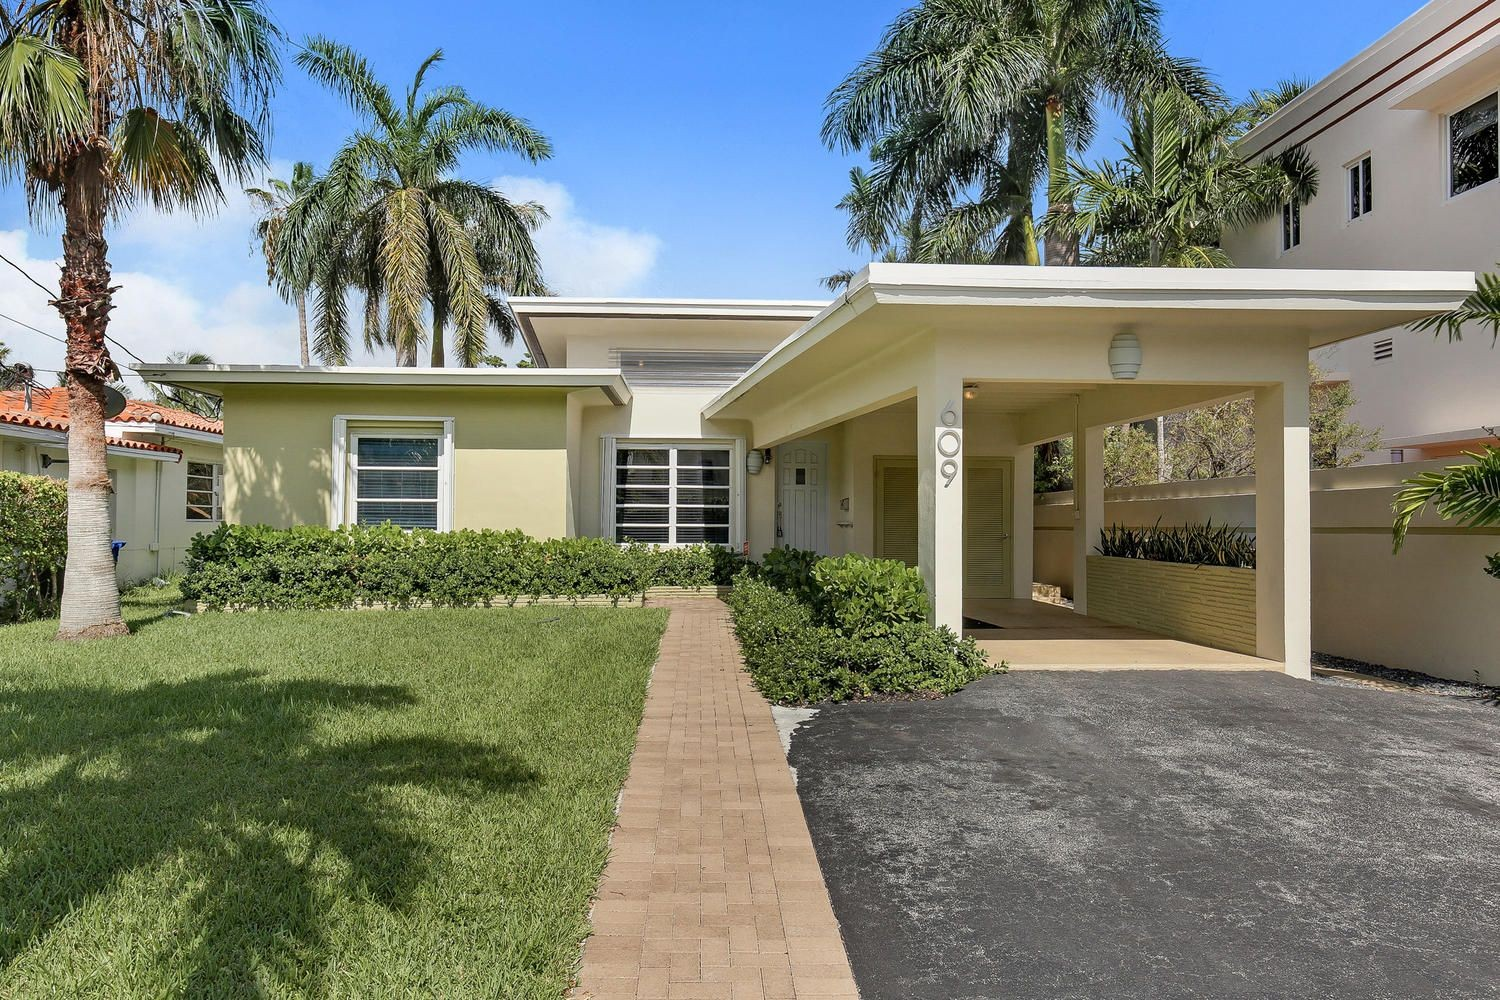 Fort Lauderdale FL Purchase and Rehab